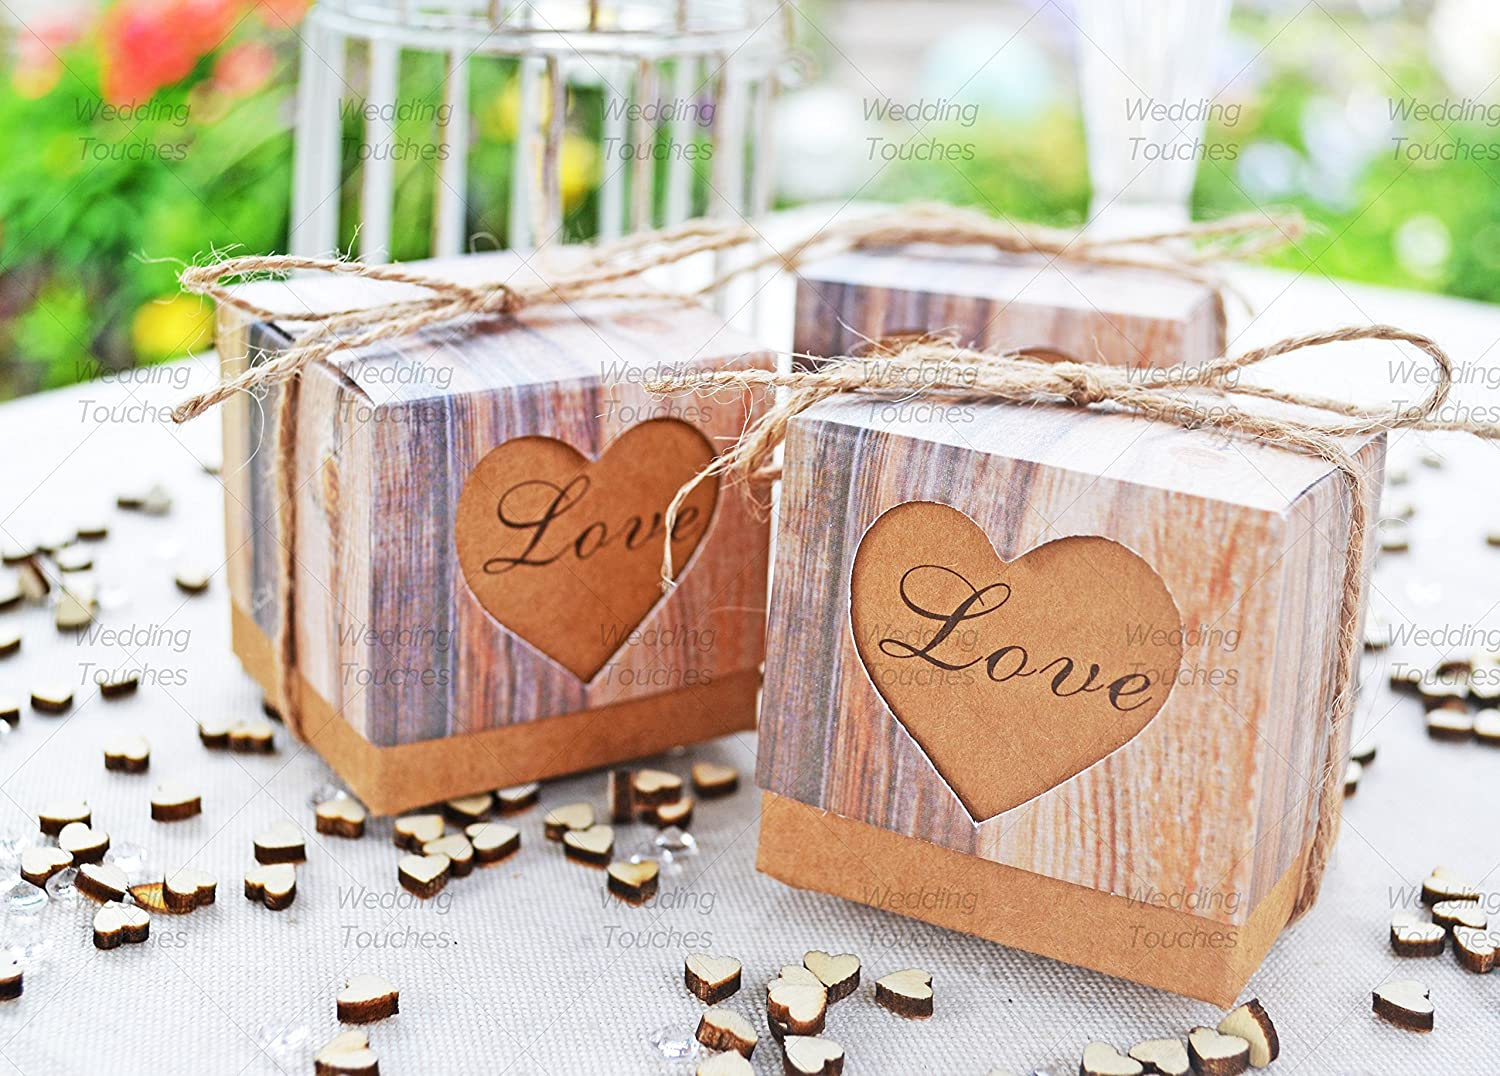 Amazon.com: Wedding Touches Pack of 100 Rustic Love Hearts Vintage Shabby-Chic Wedding Favour Boxes (100): Home & Kitchen